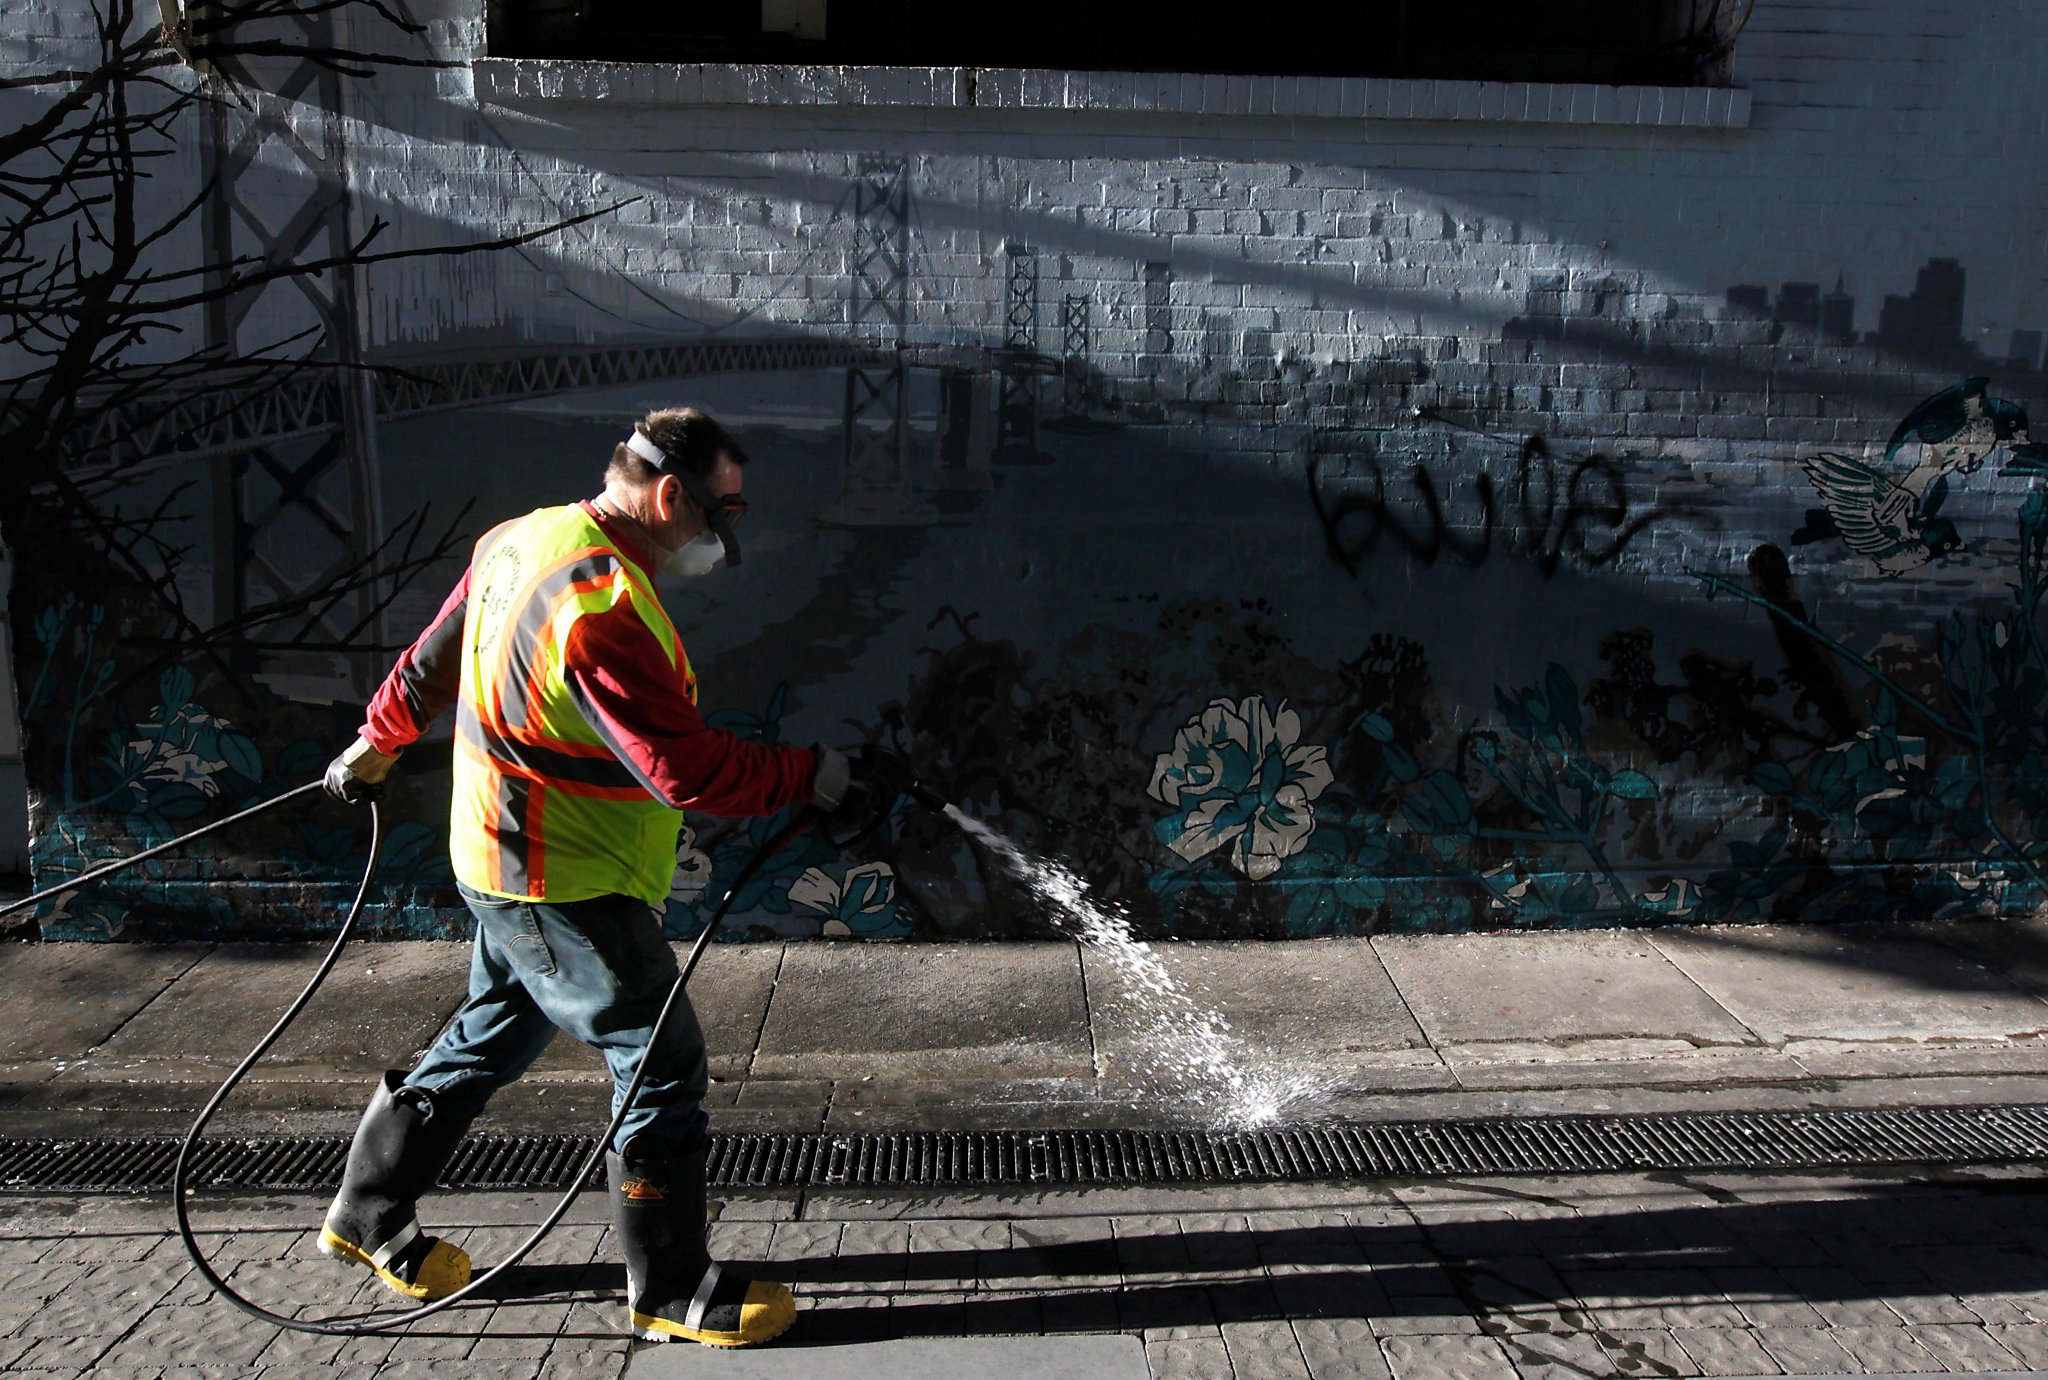 Sf Street Cleaning >> It's no laughing matter — SF forming Poop Patrol to keep sidewalks clean - SFChronicle.com